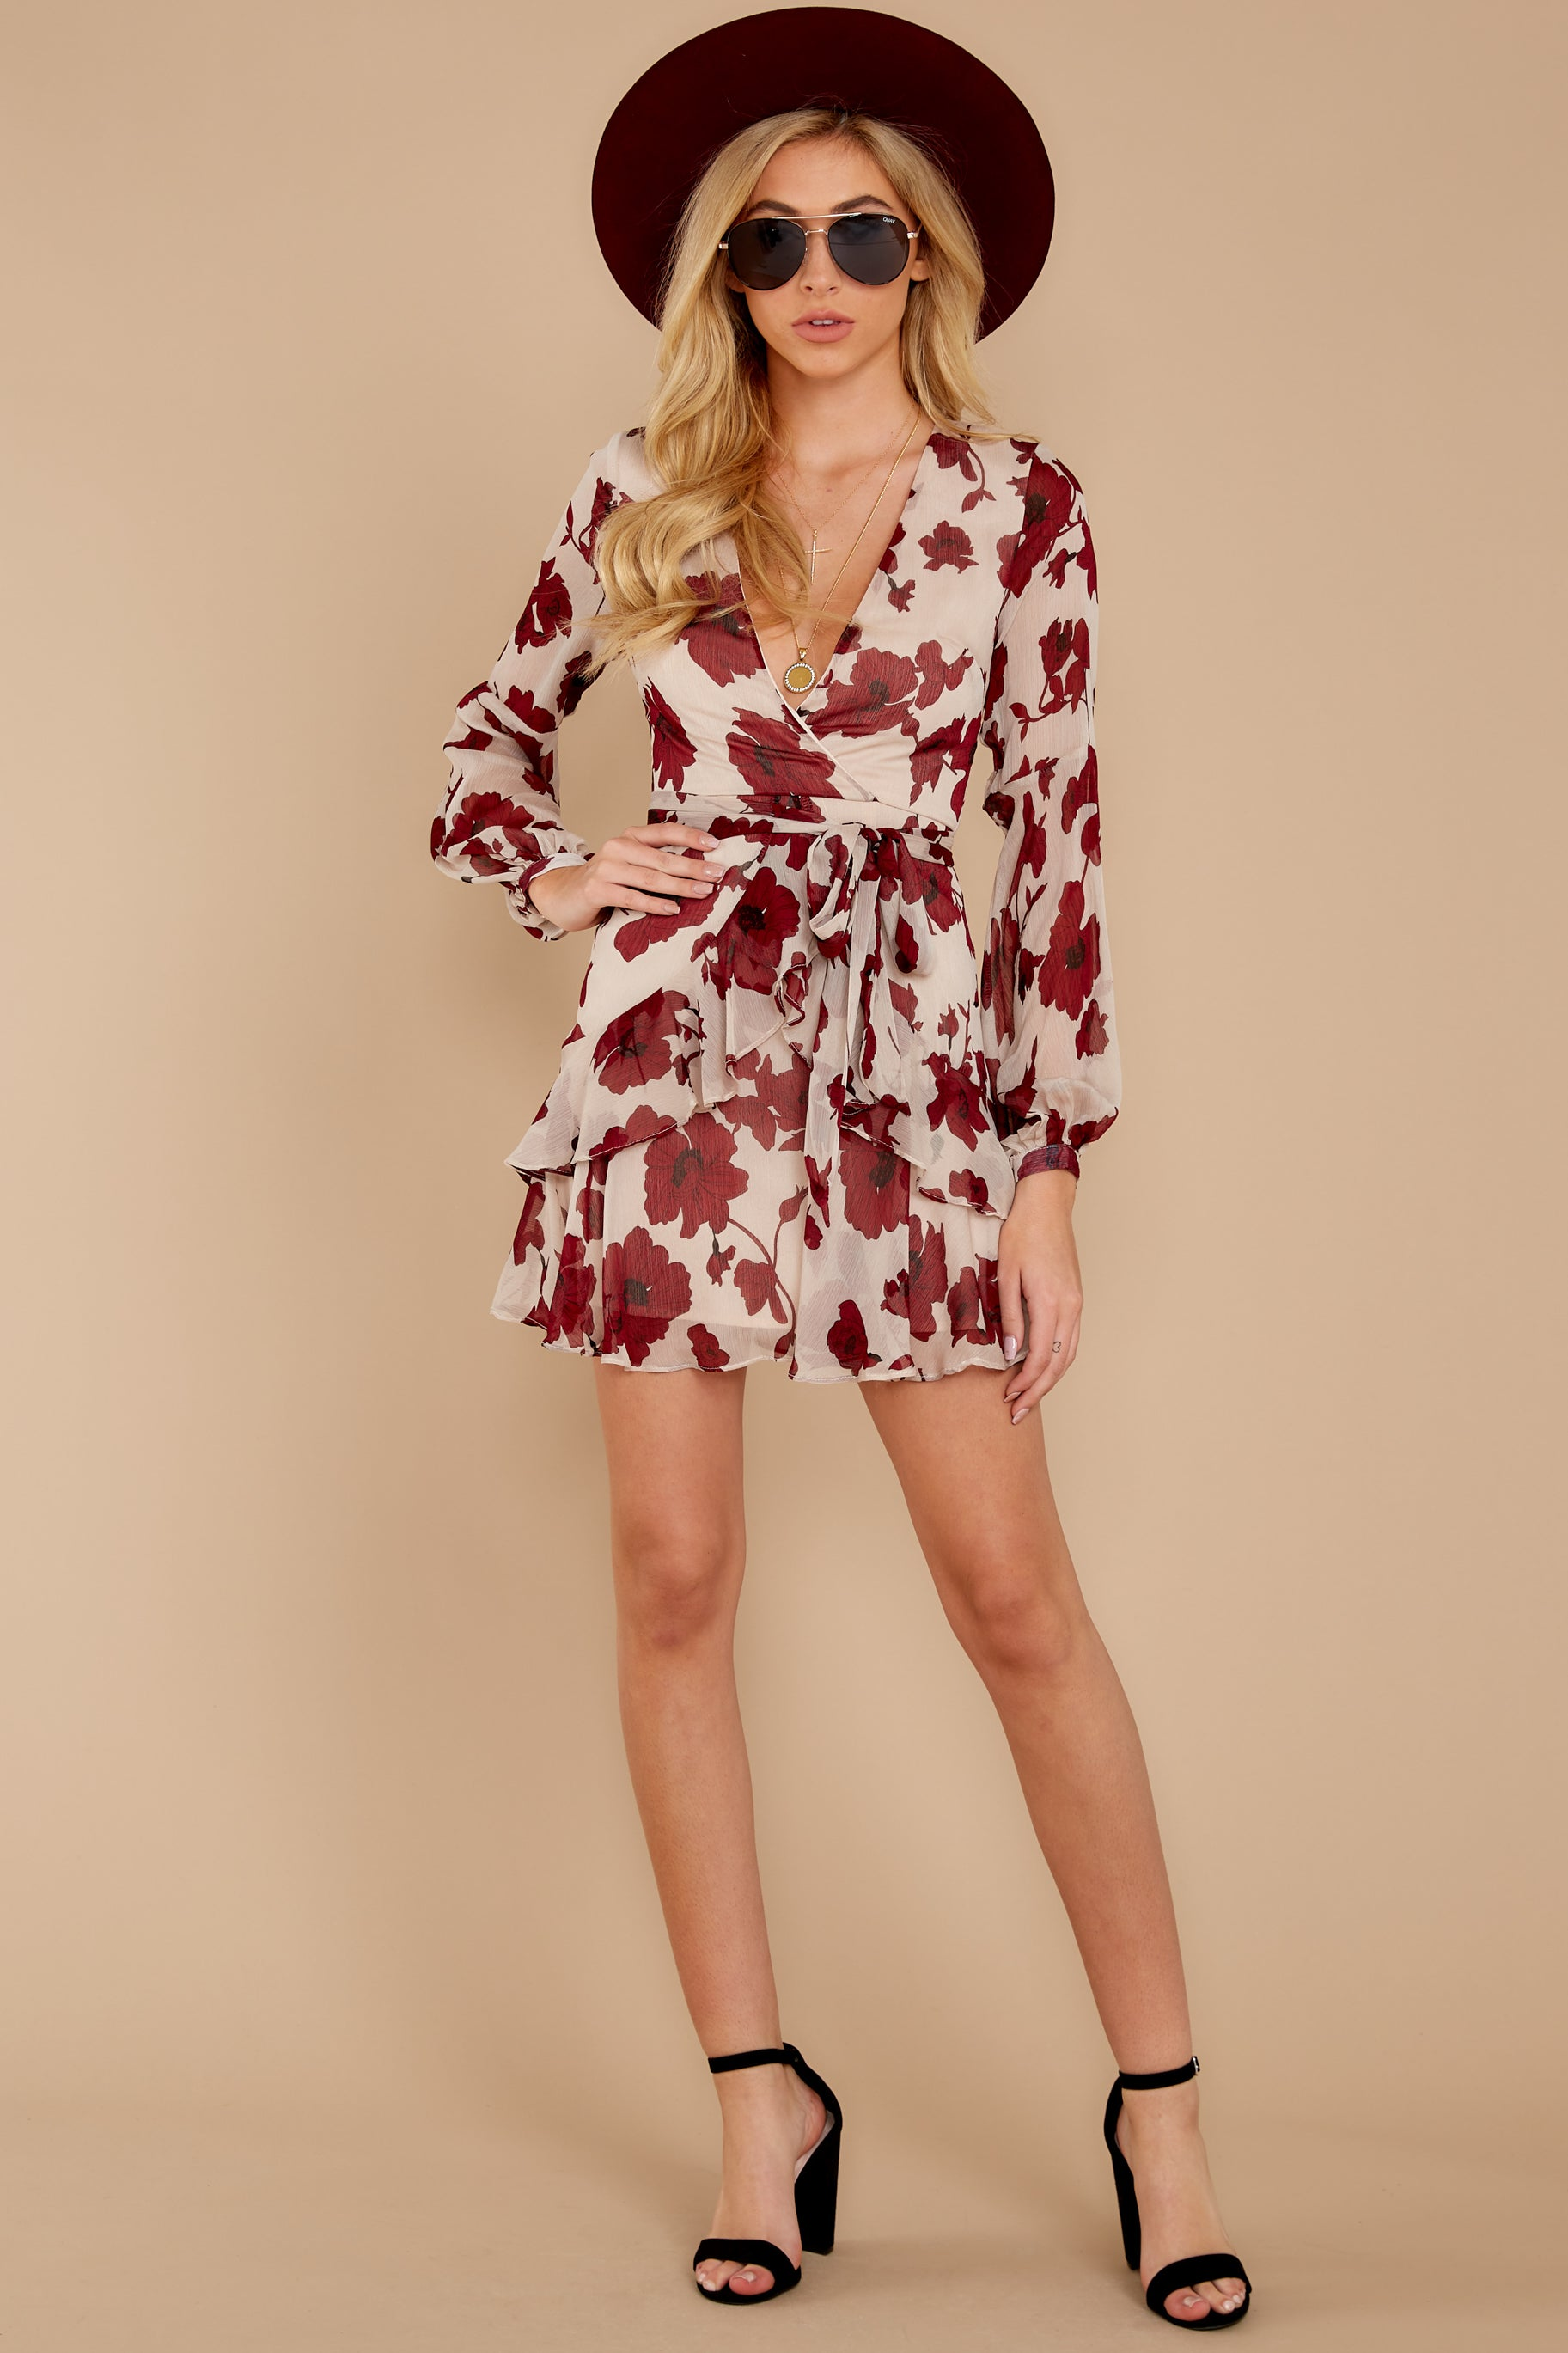 1 Simply Yours Burgundy Floral Print Dress at reddressboutique.com